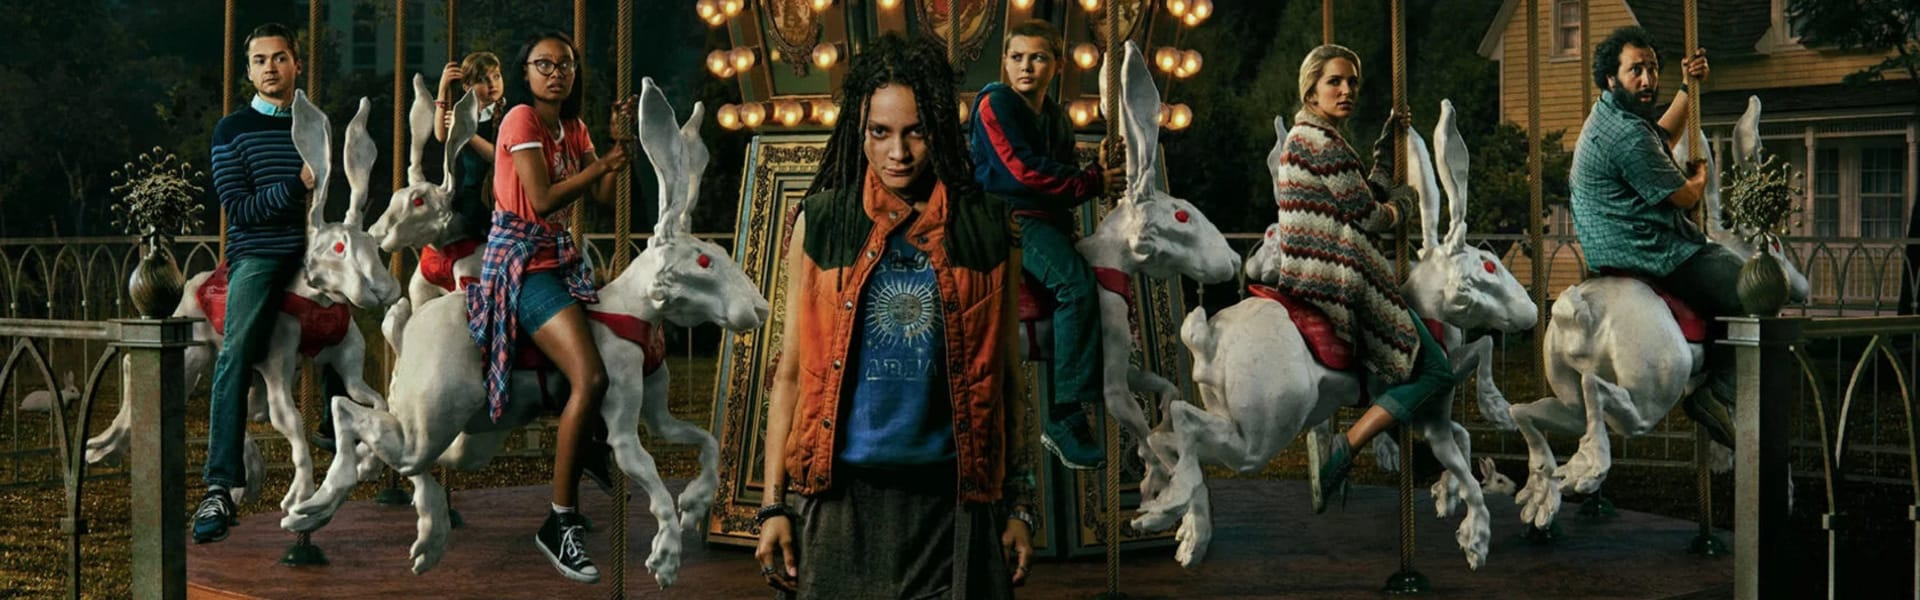 A girl stands in front of a carousel with people riding rabbits